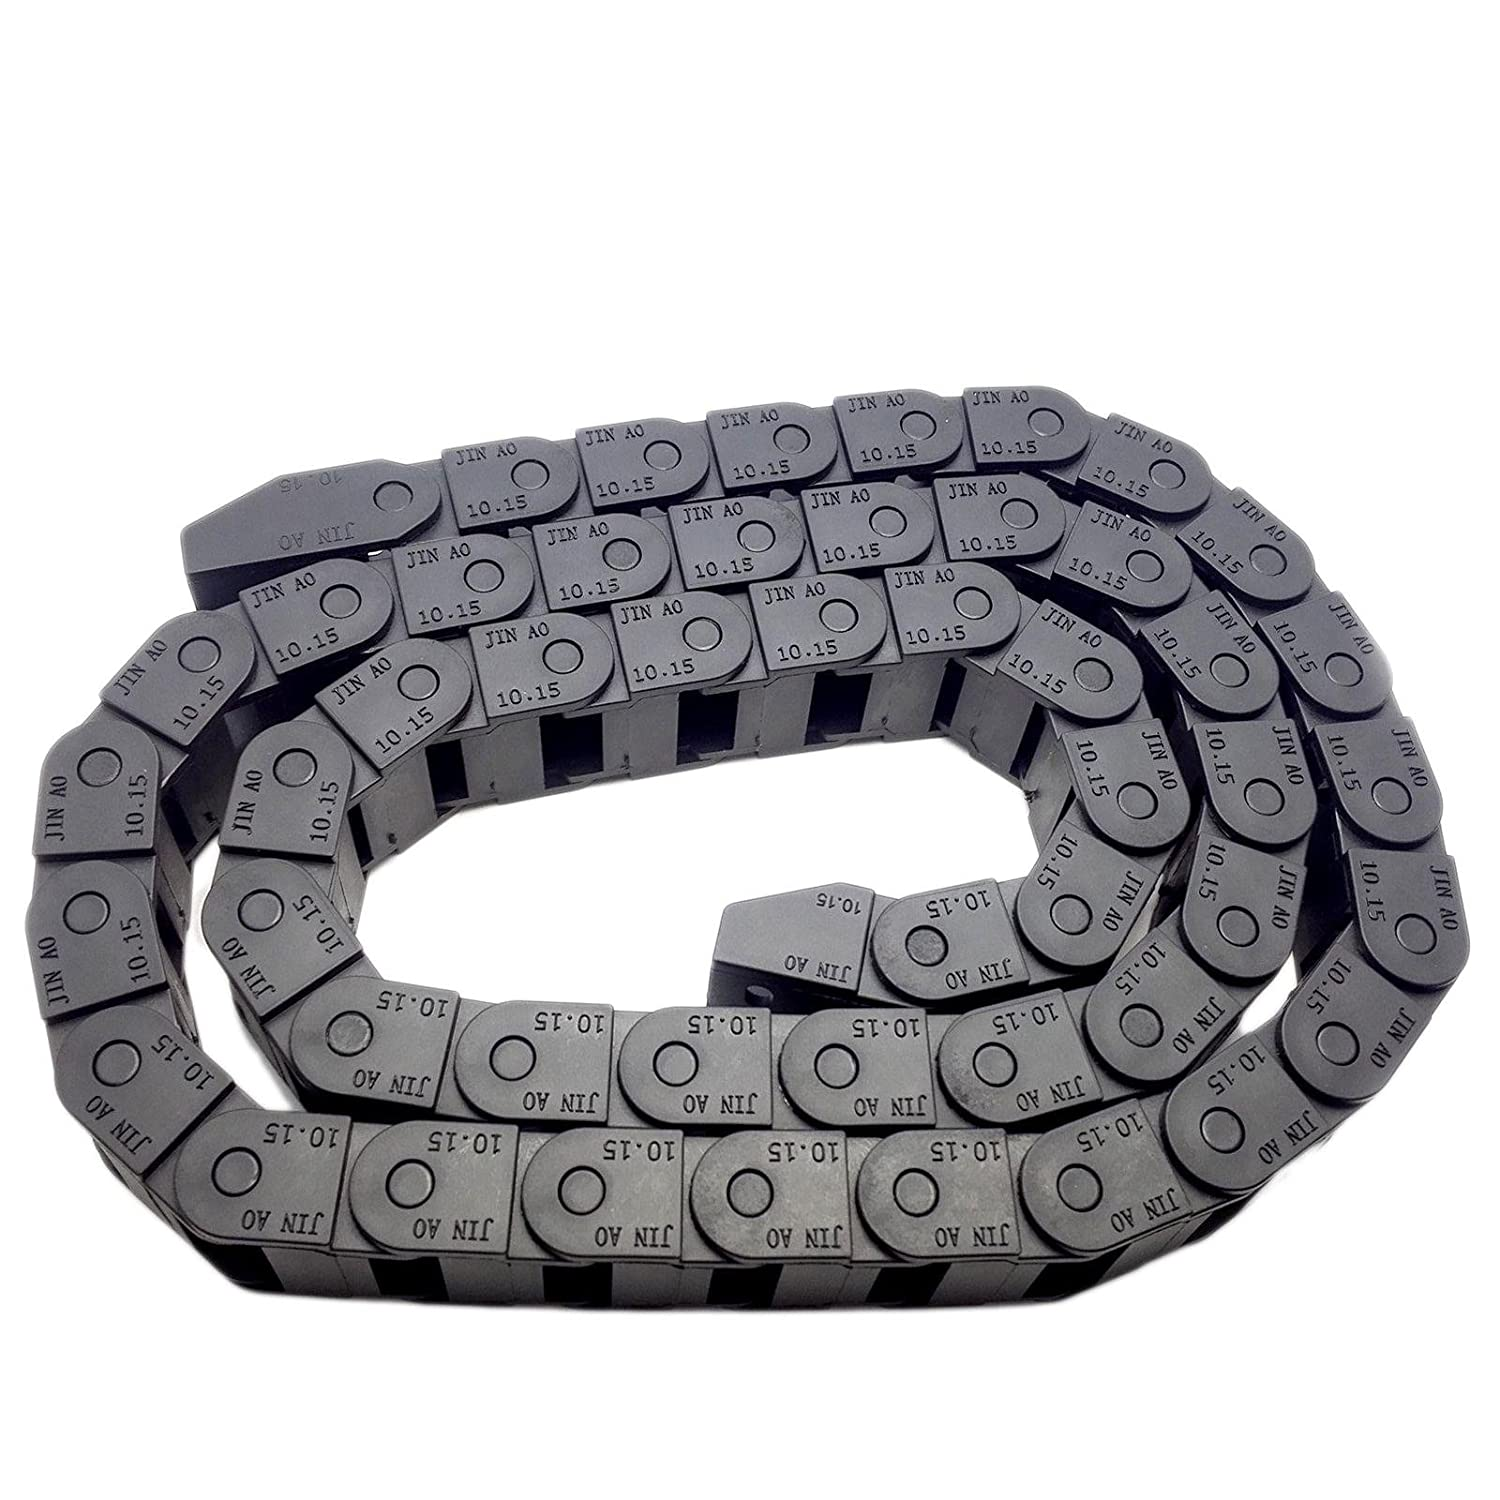 18x25 2M 18mm x 25mm Series Bridge Type Open R48 Small Cable Drag Chain Wire Carrier /& End Connectors Plastic Towline for CNC Router Machine